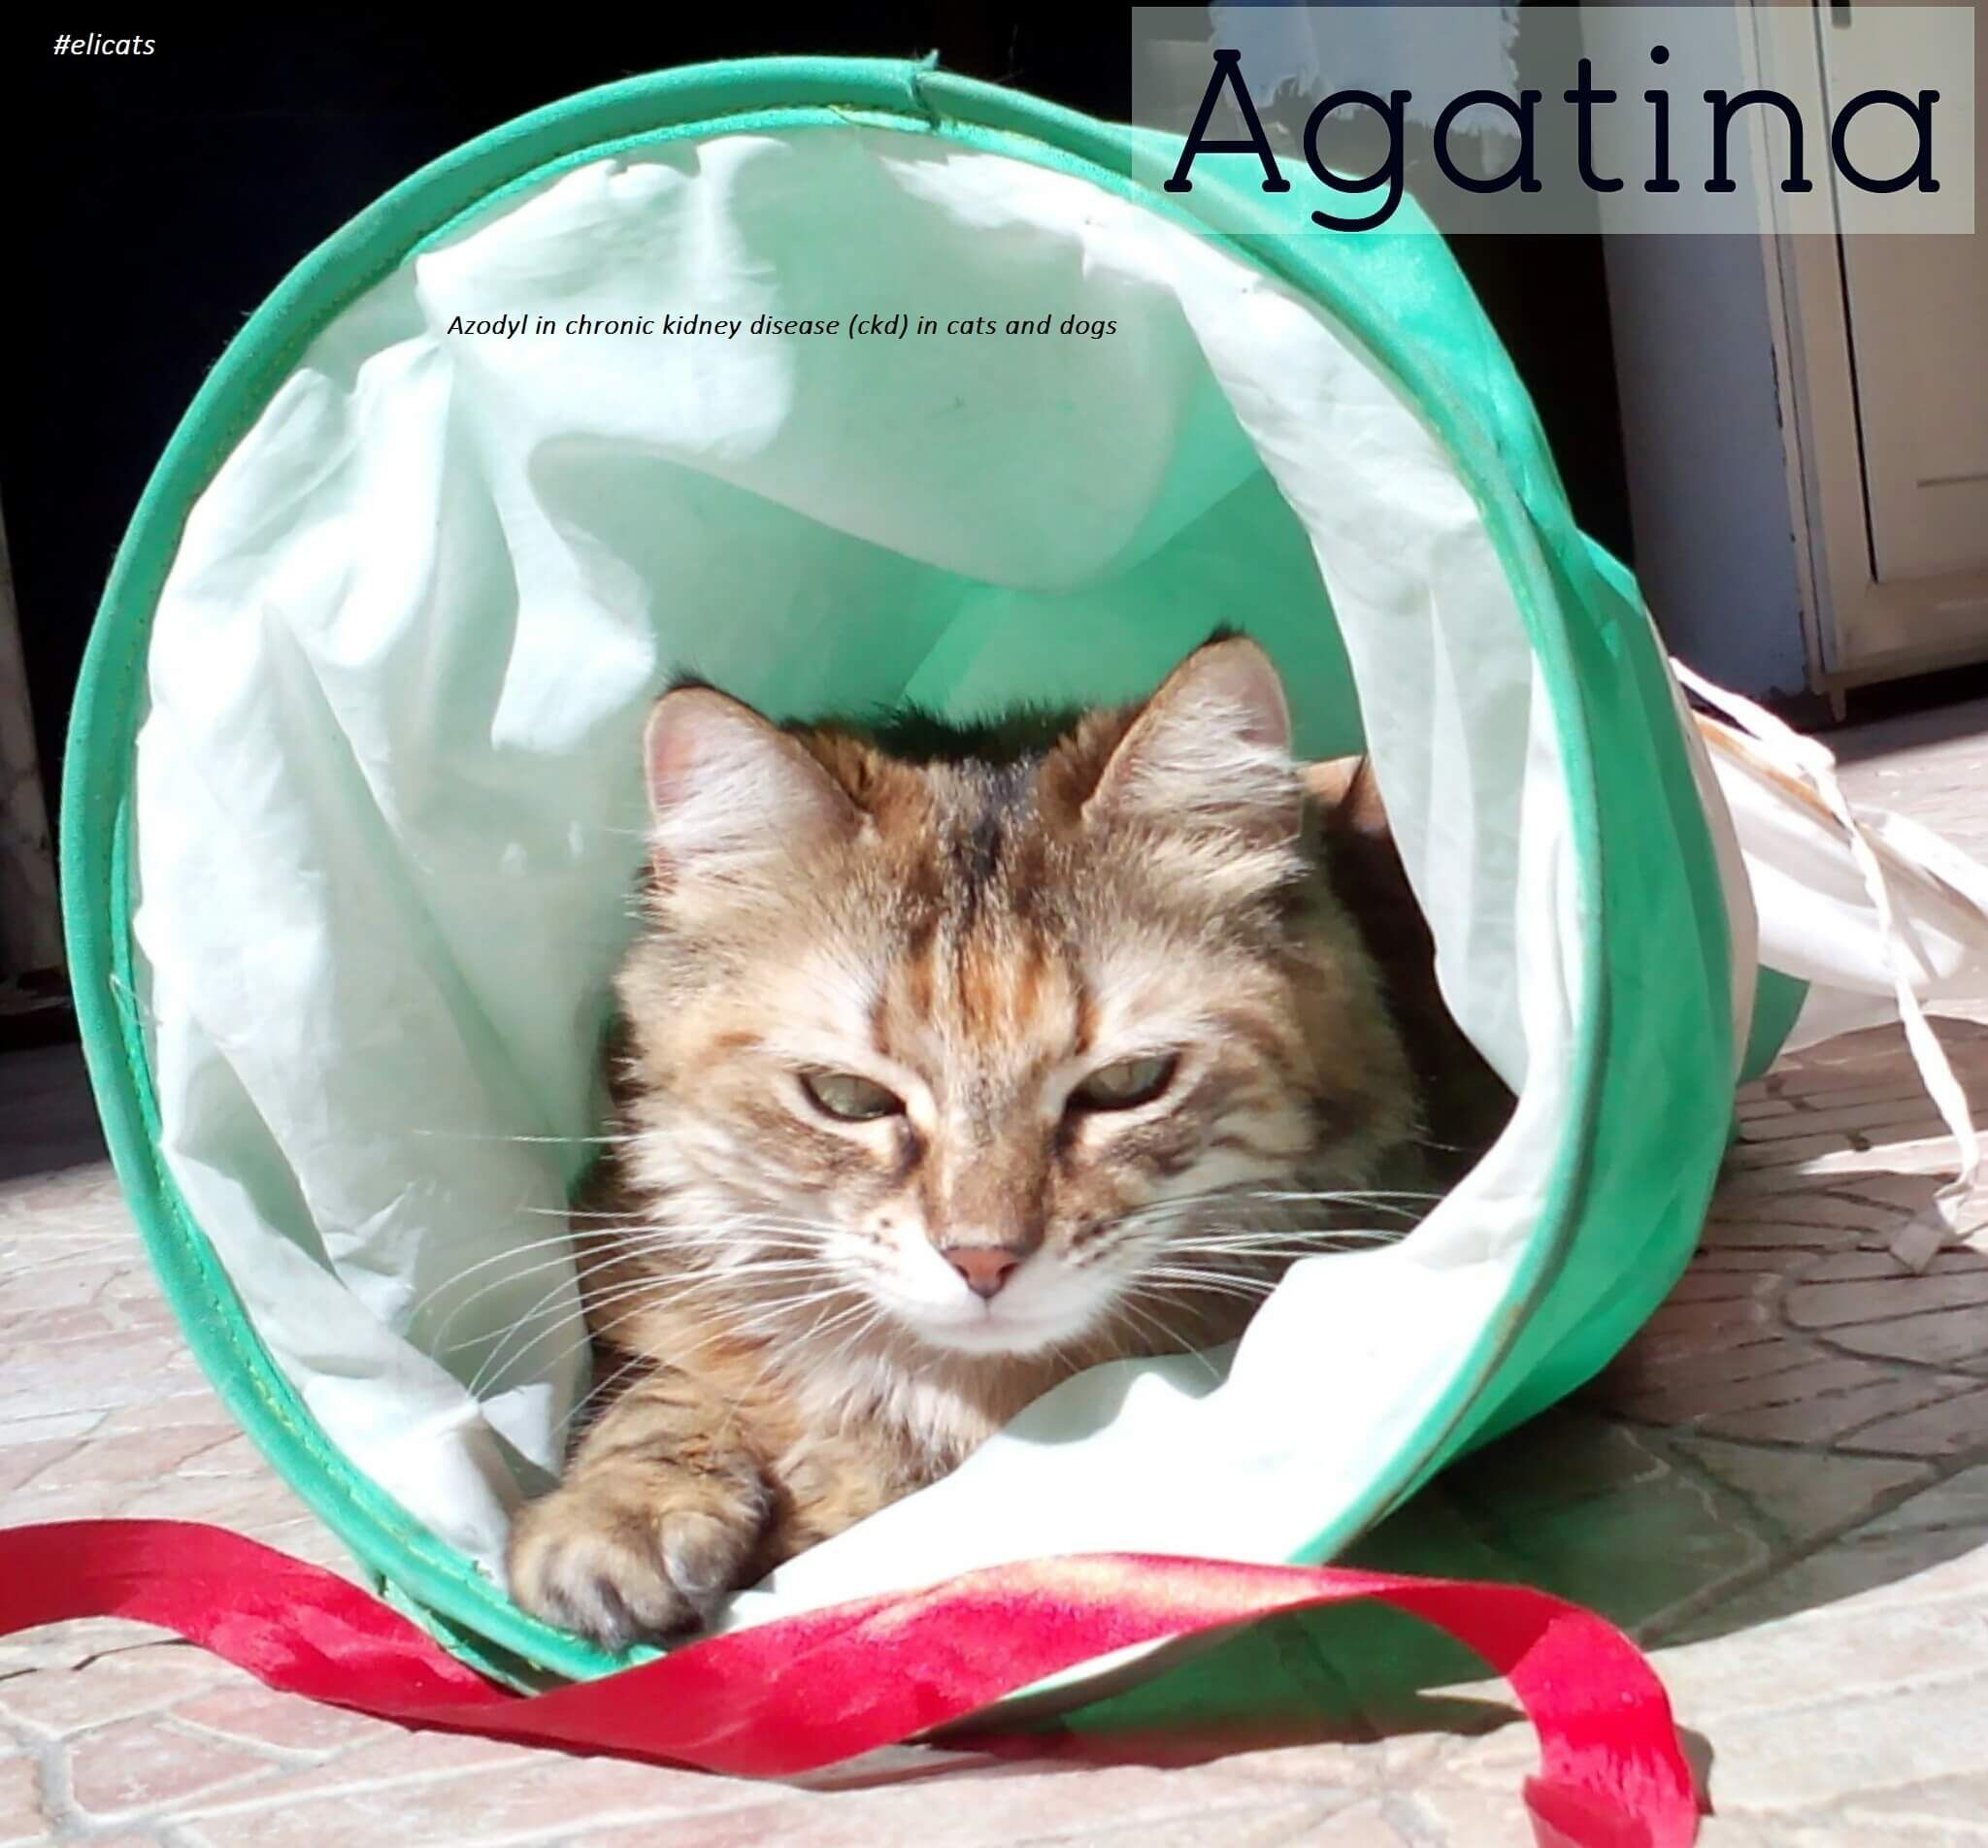 Azodyl in chronic kidney disease (ckd) in cats and dogs